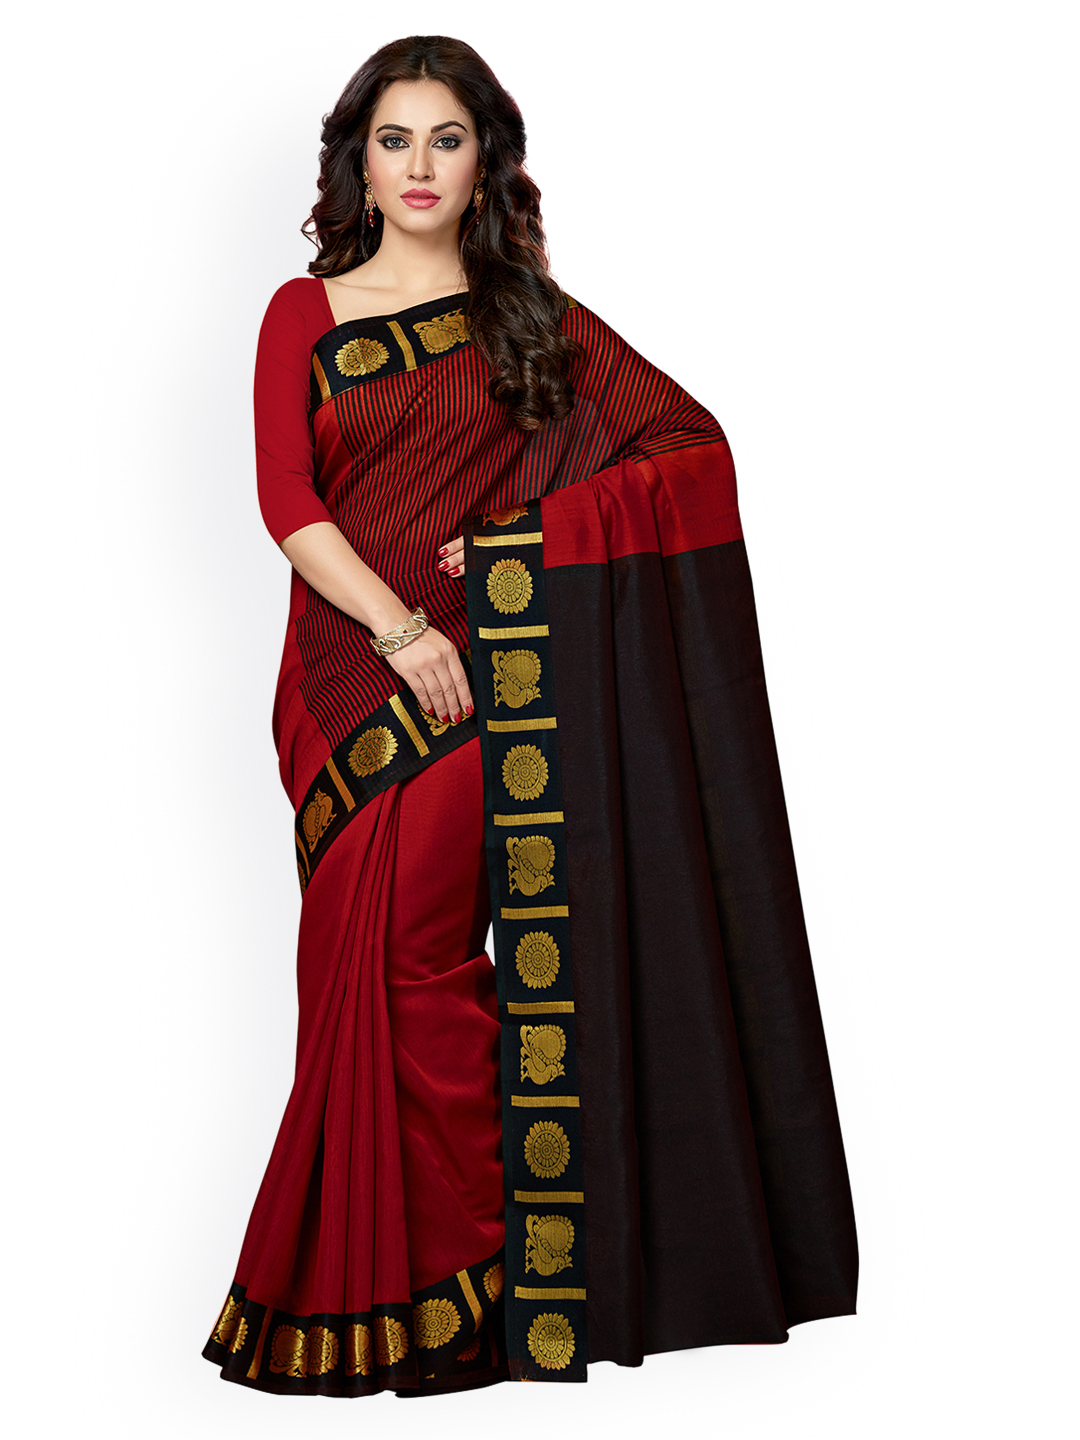 Ishin Red & Black Silk Cotton Woven Design Chanderi Saree Price in India